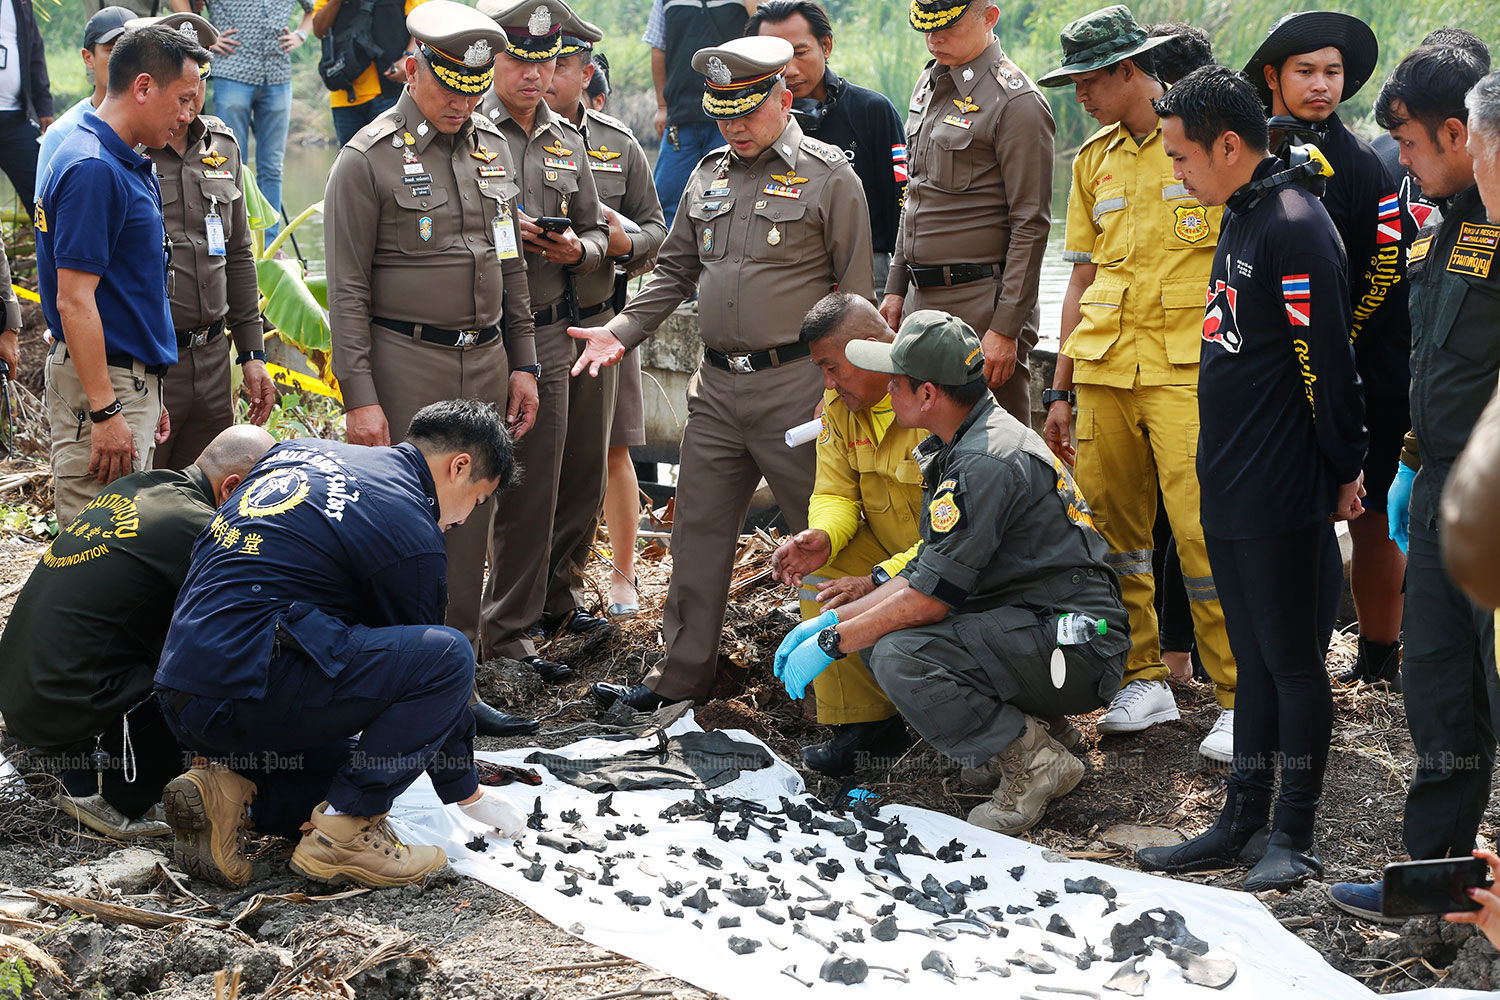 Nearly 300 bone fragments found in Bangkok pond, police searching for more bodies   News by Thaiger